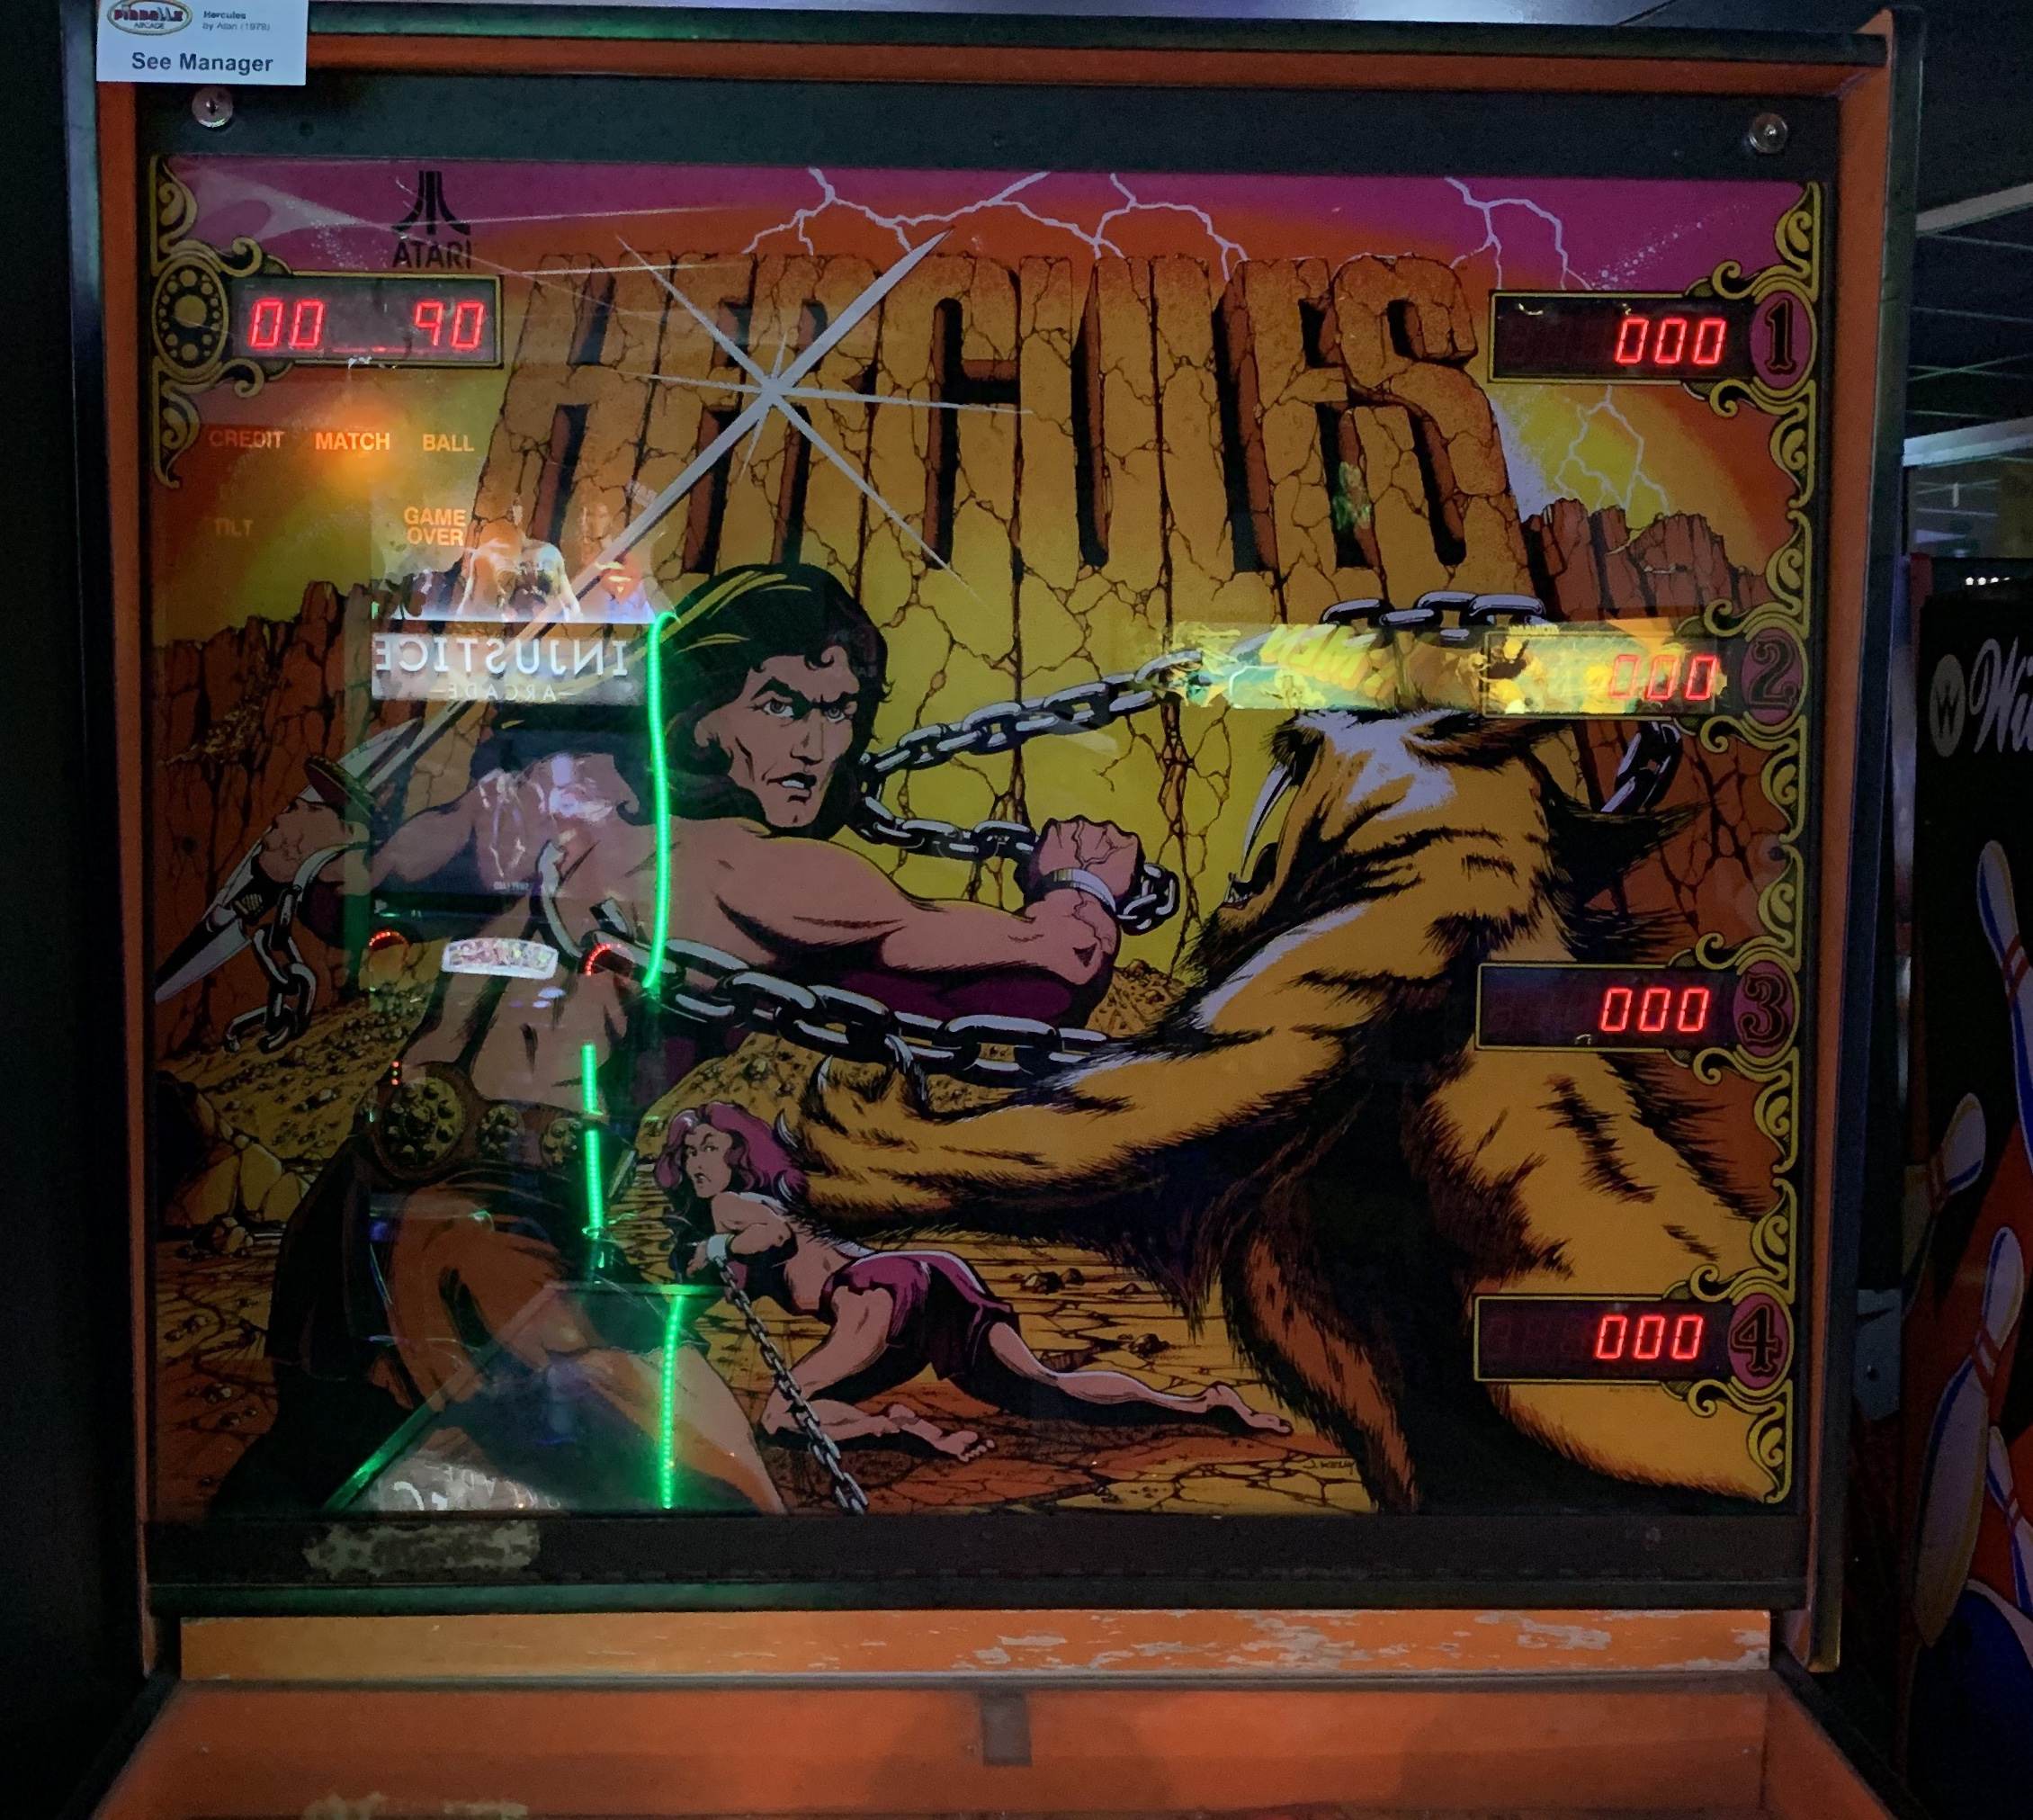 A World of Games: Hercules Pinball